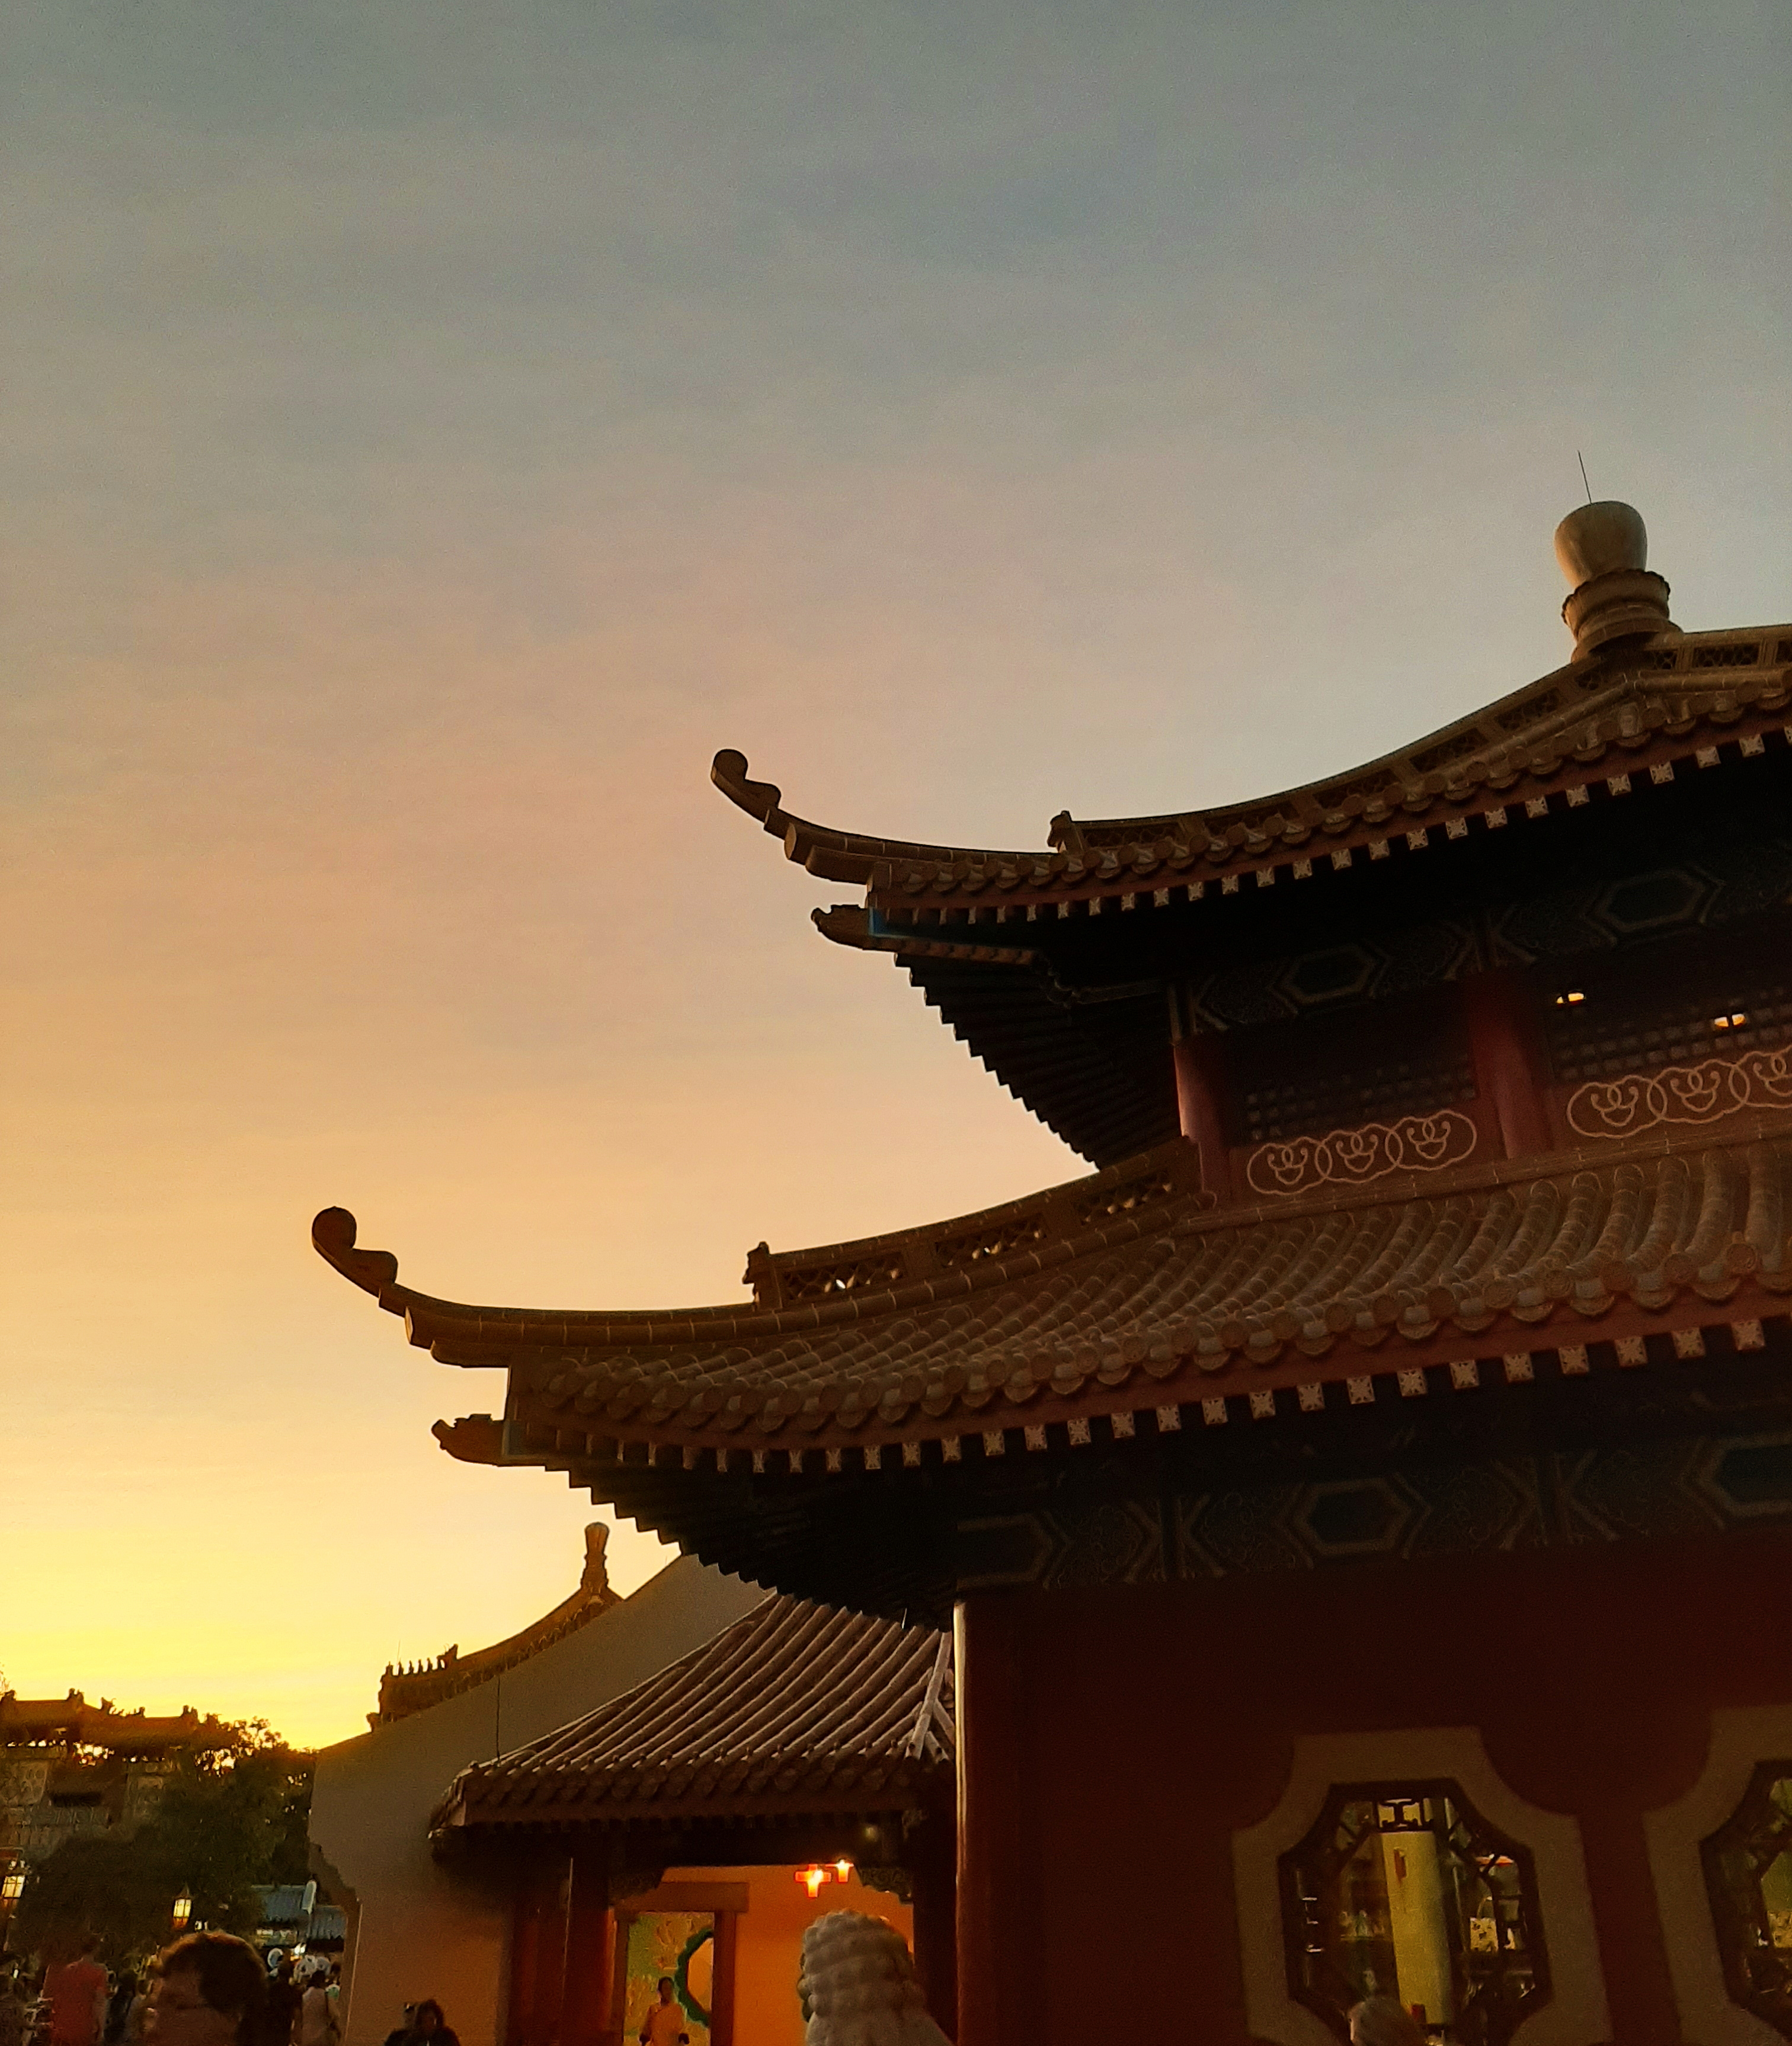 Corner of the Chinese Pavilion against the sunset